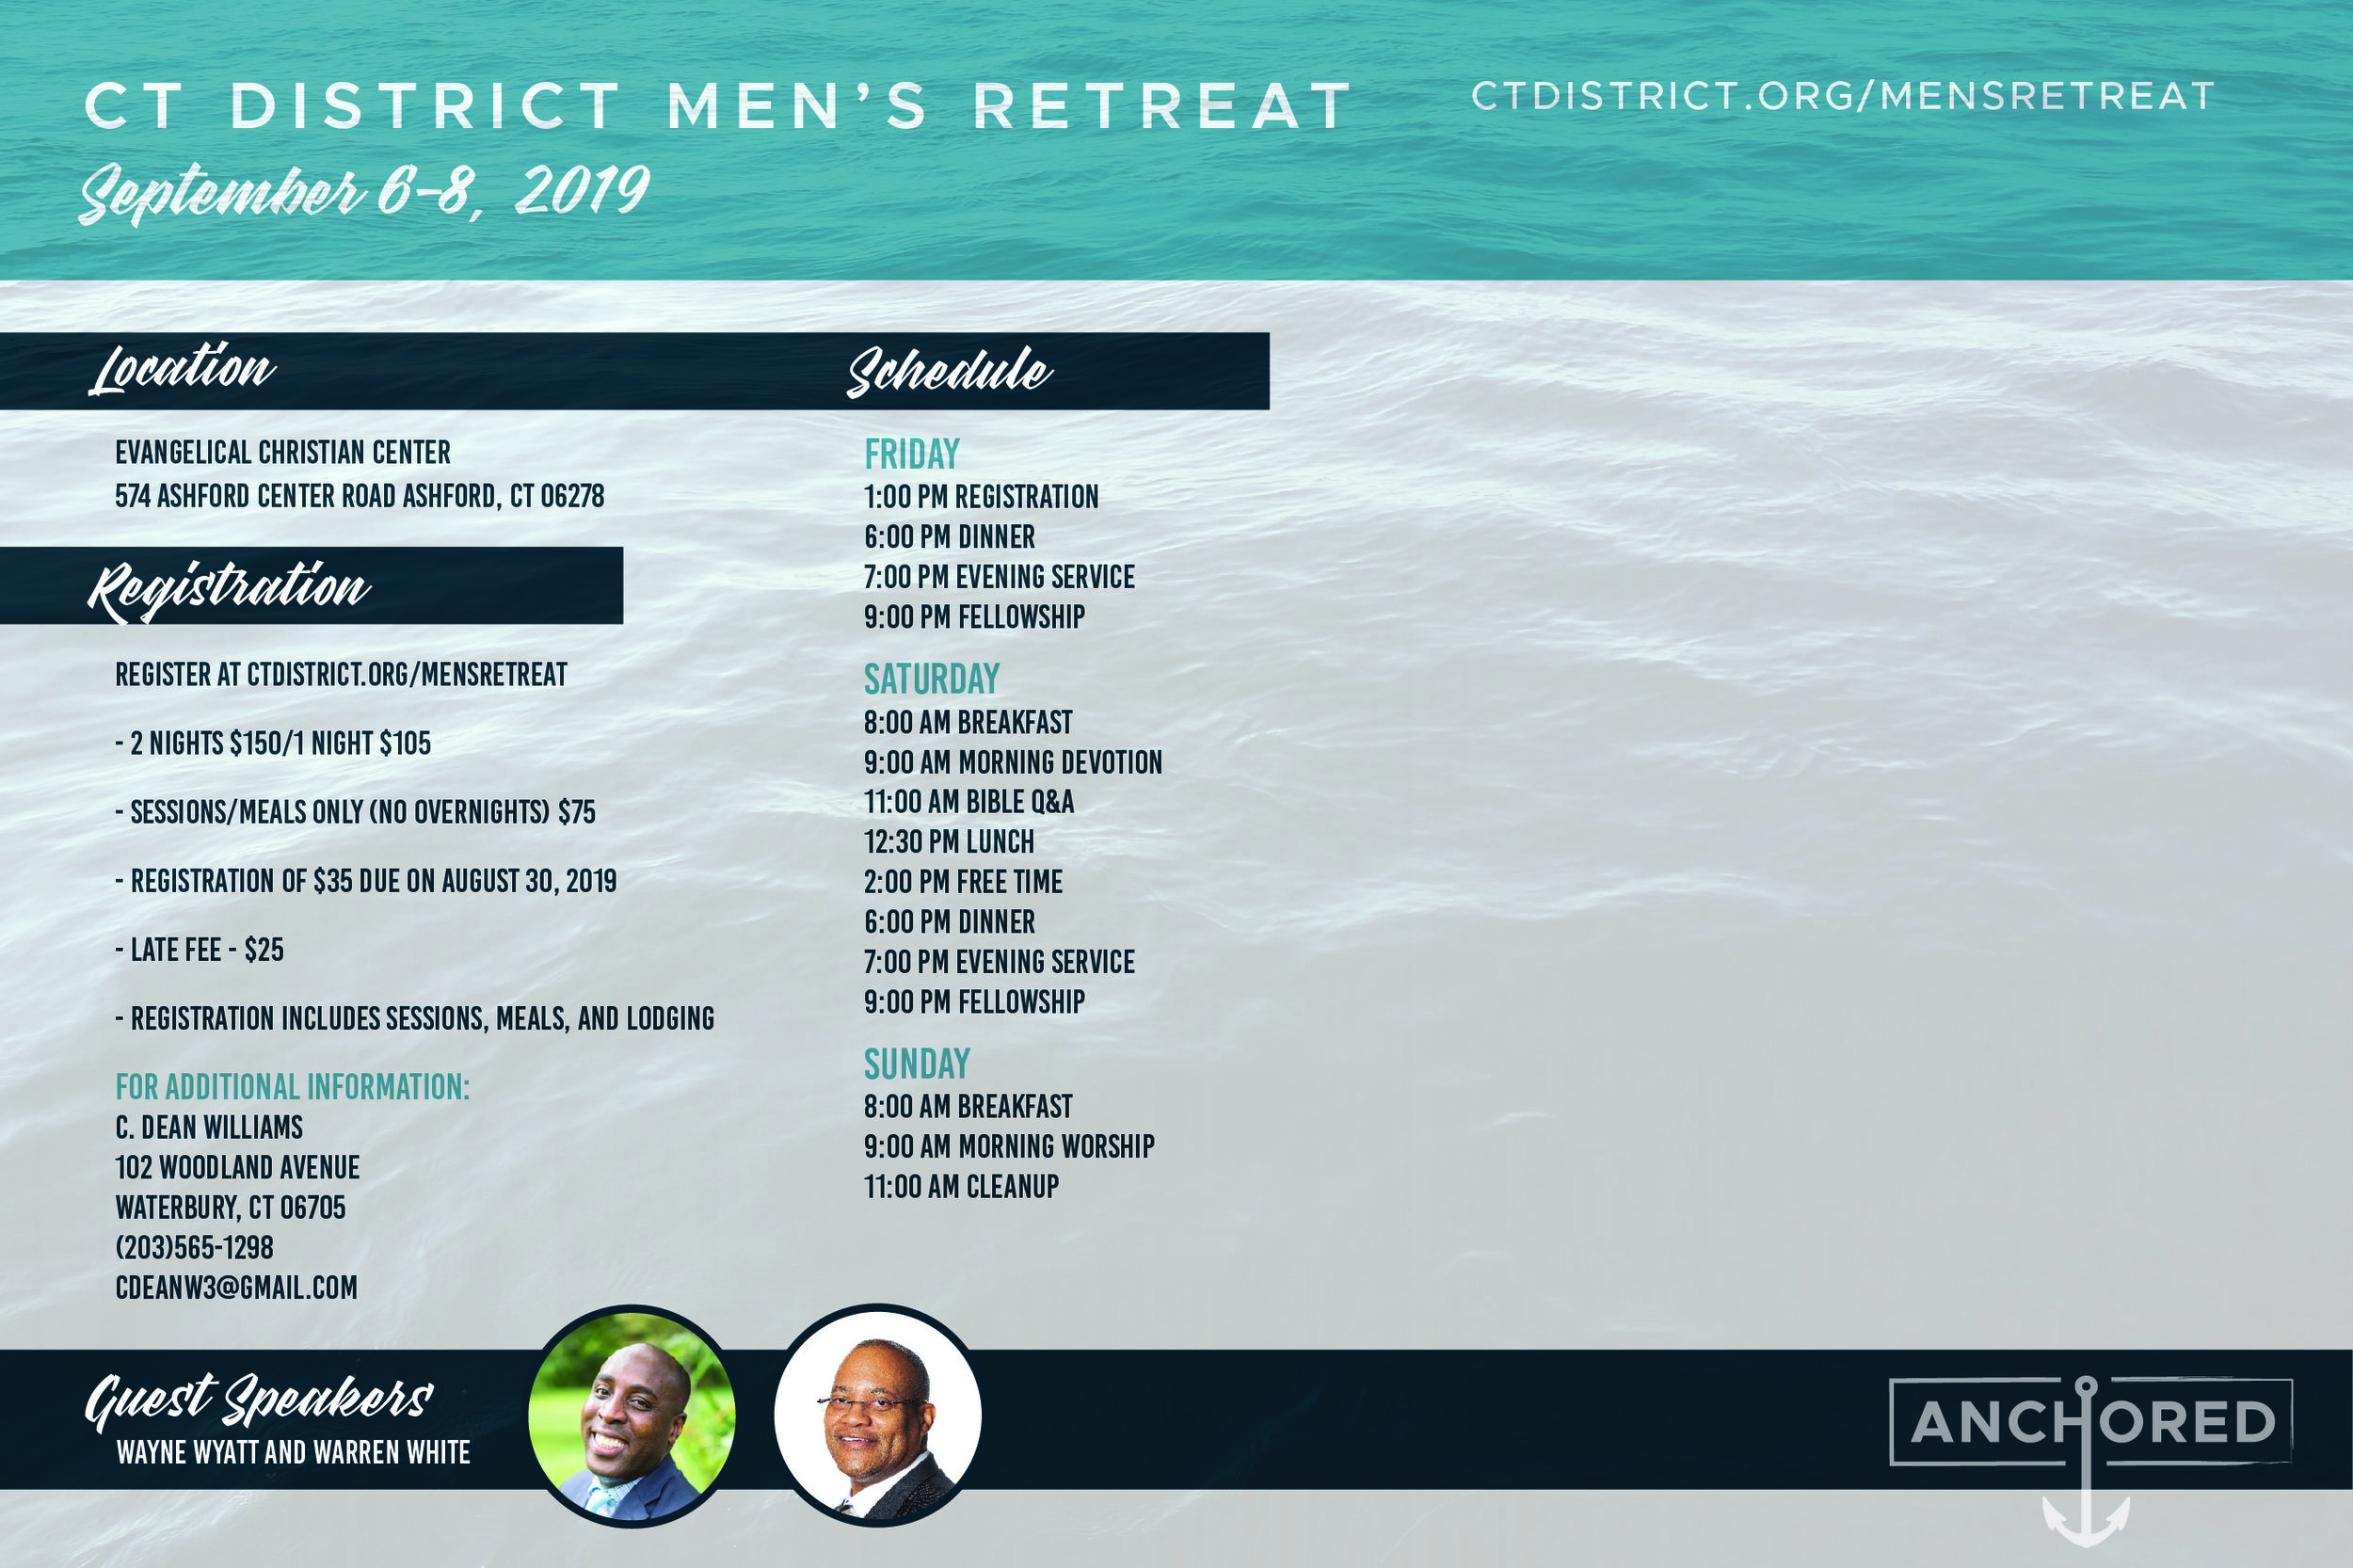 CTMensRetreat_6x9_Postcard-02.jpg